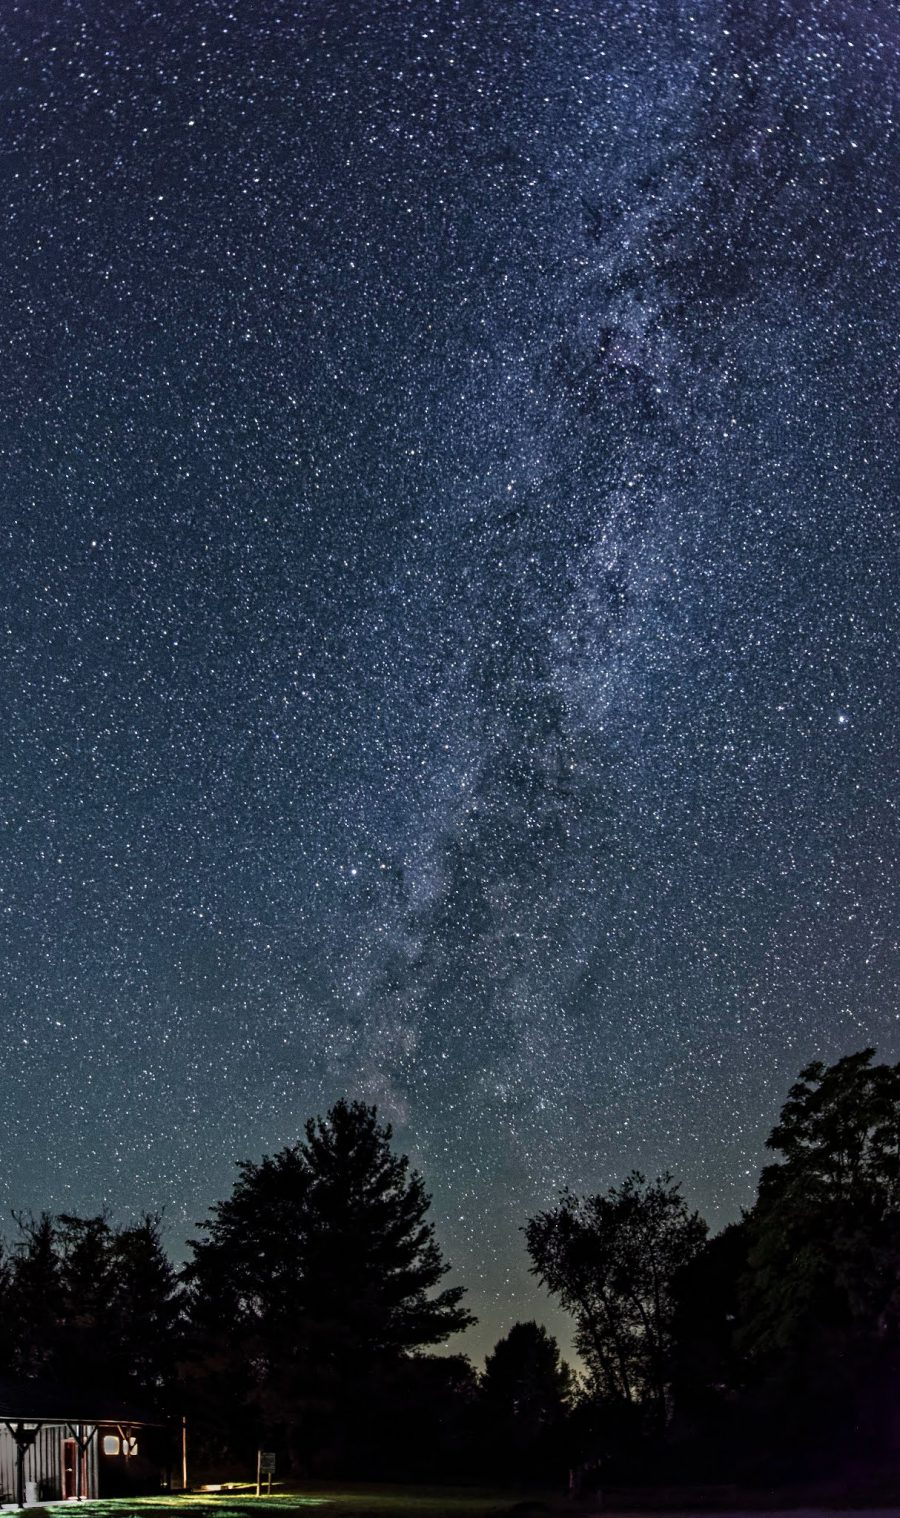 Rappahannock County Park Awarded International Dark Sky